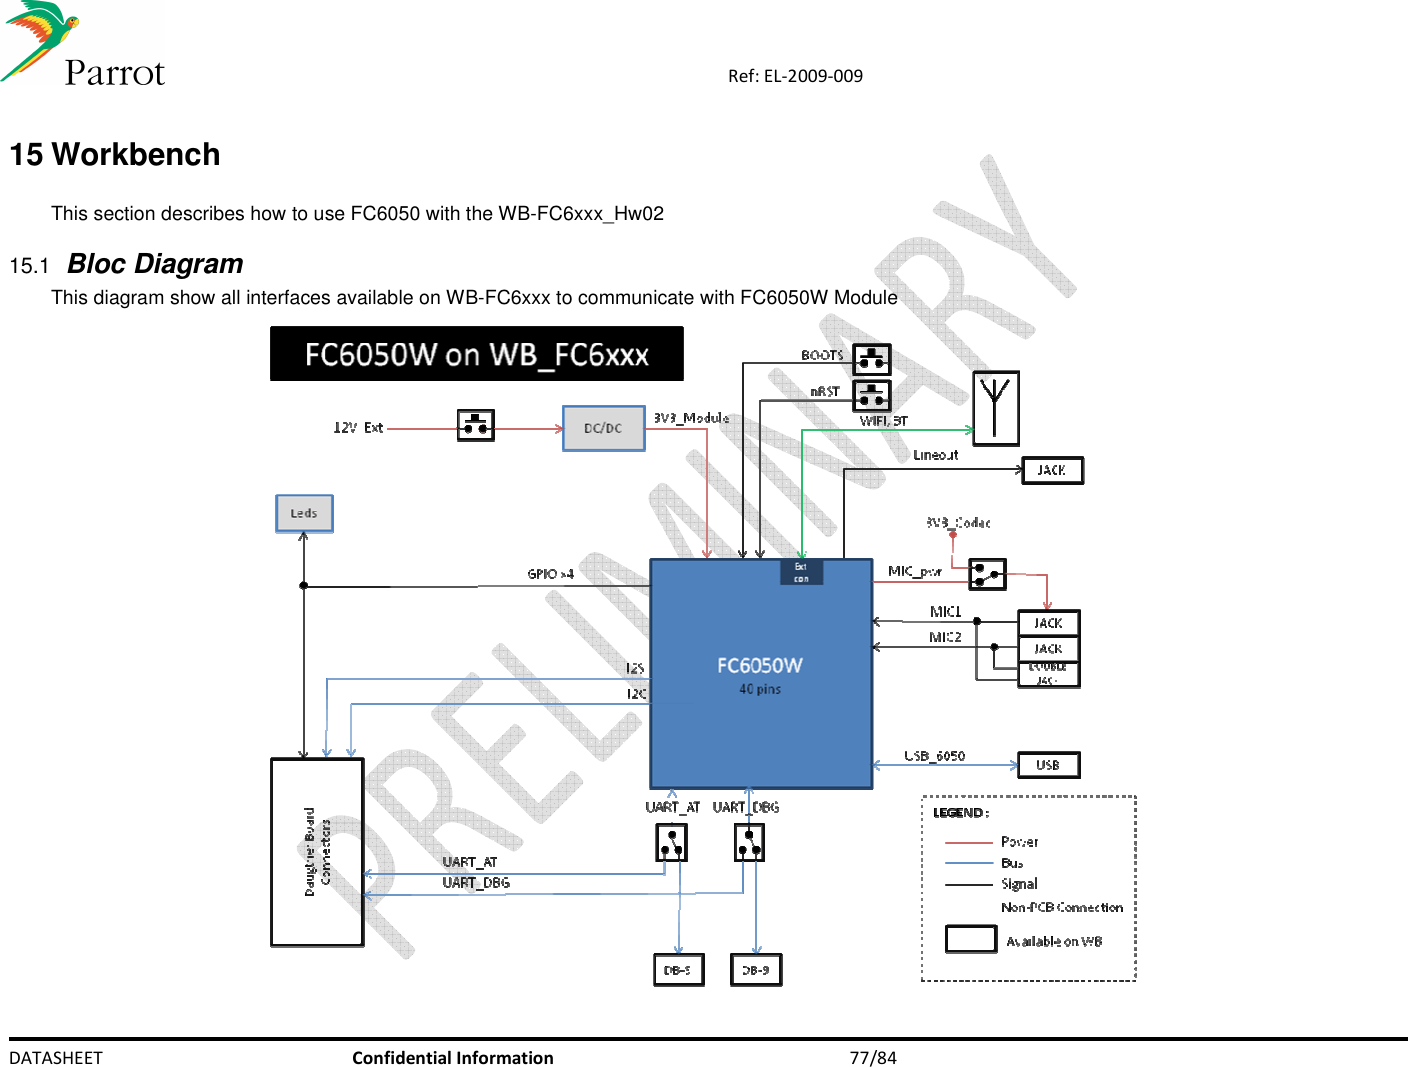 Parrot Fc6050w Bluetooth Module User Manual Fc6050 Datasheet V1 68 Diagram Page 1 Confidential Information 77 84 Ref El 2009 009 15 Workbench This